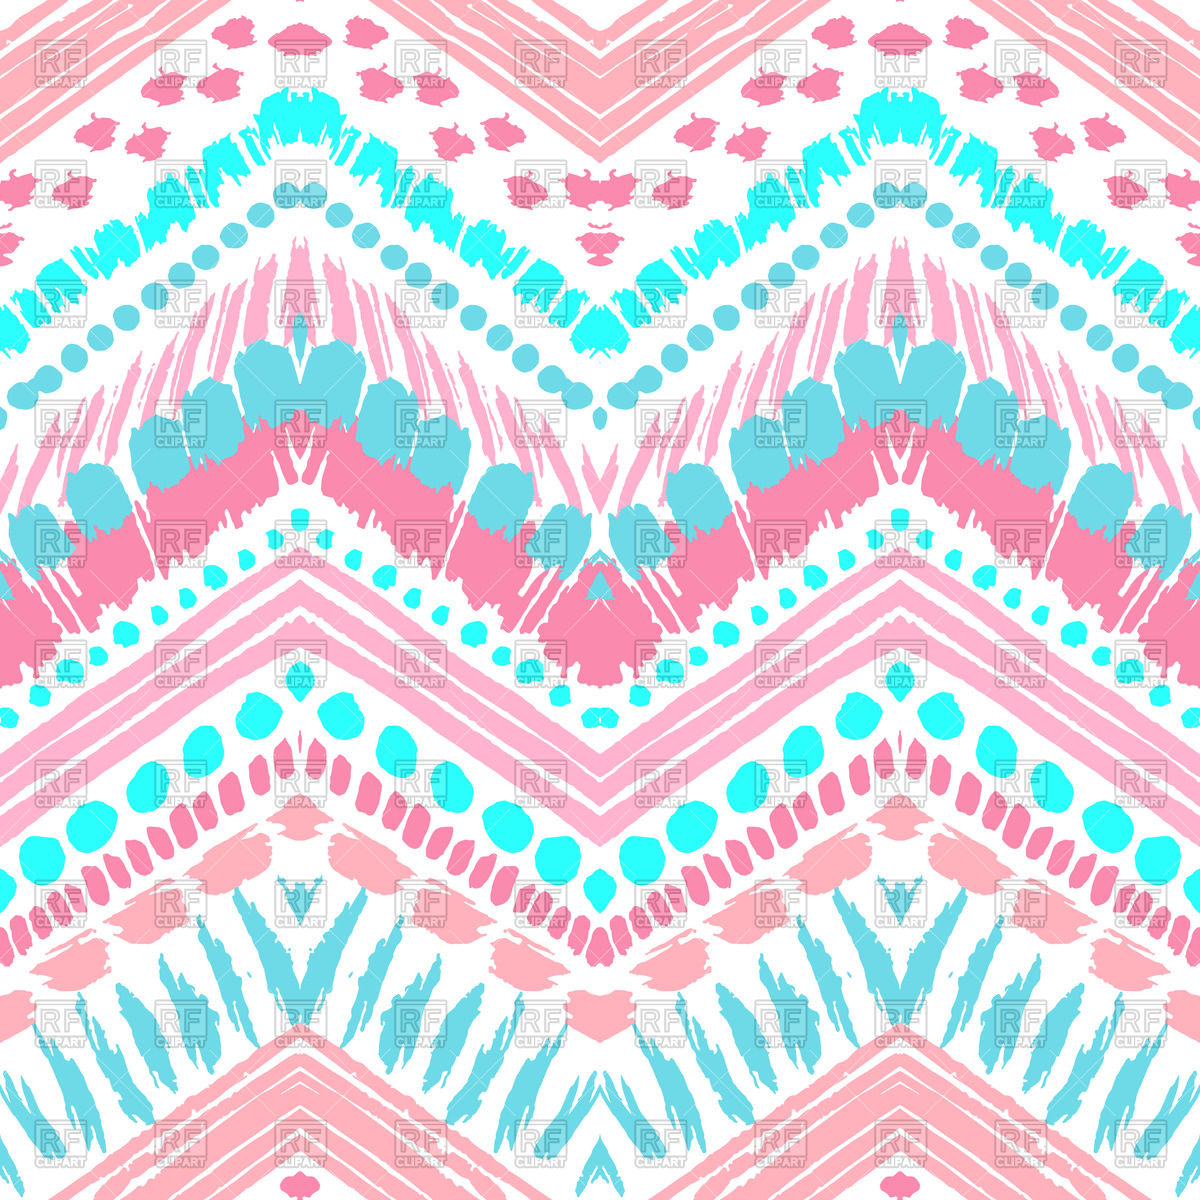 1200x1200 Hand Drawn Ethnic Pink Seamless Zigzag Pattern Vector Image